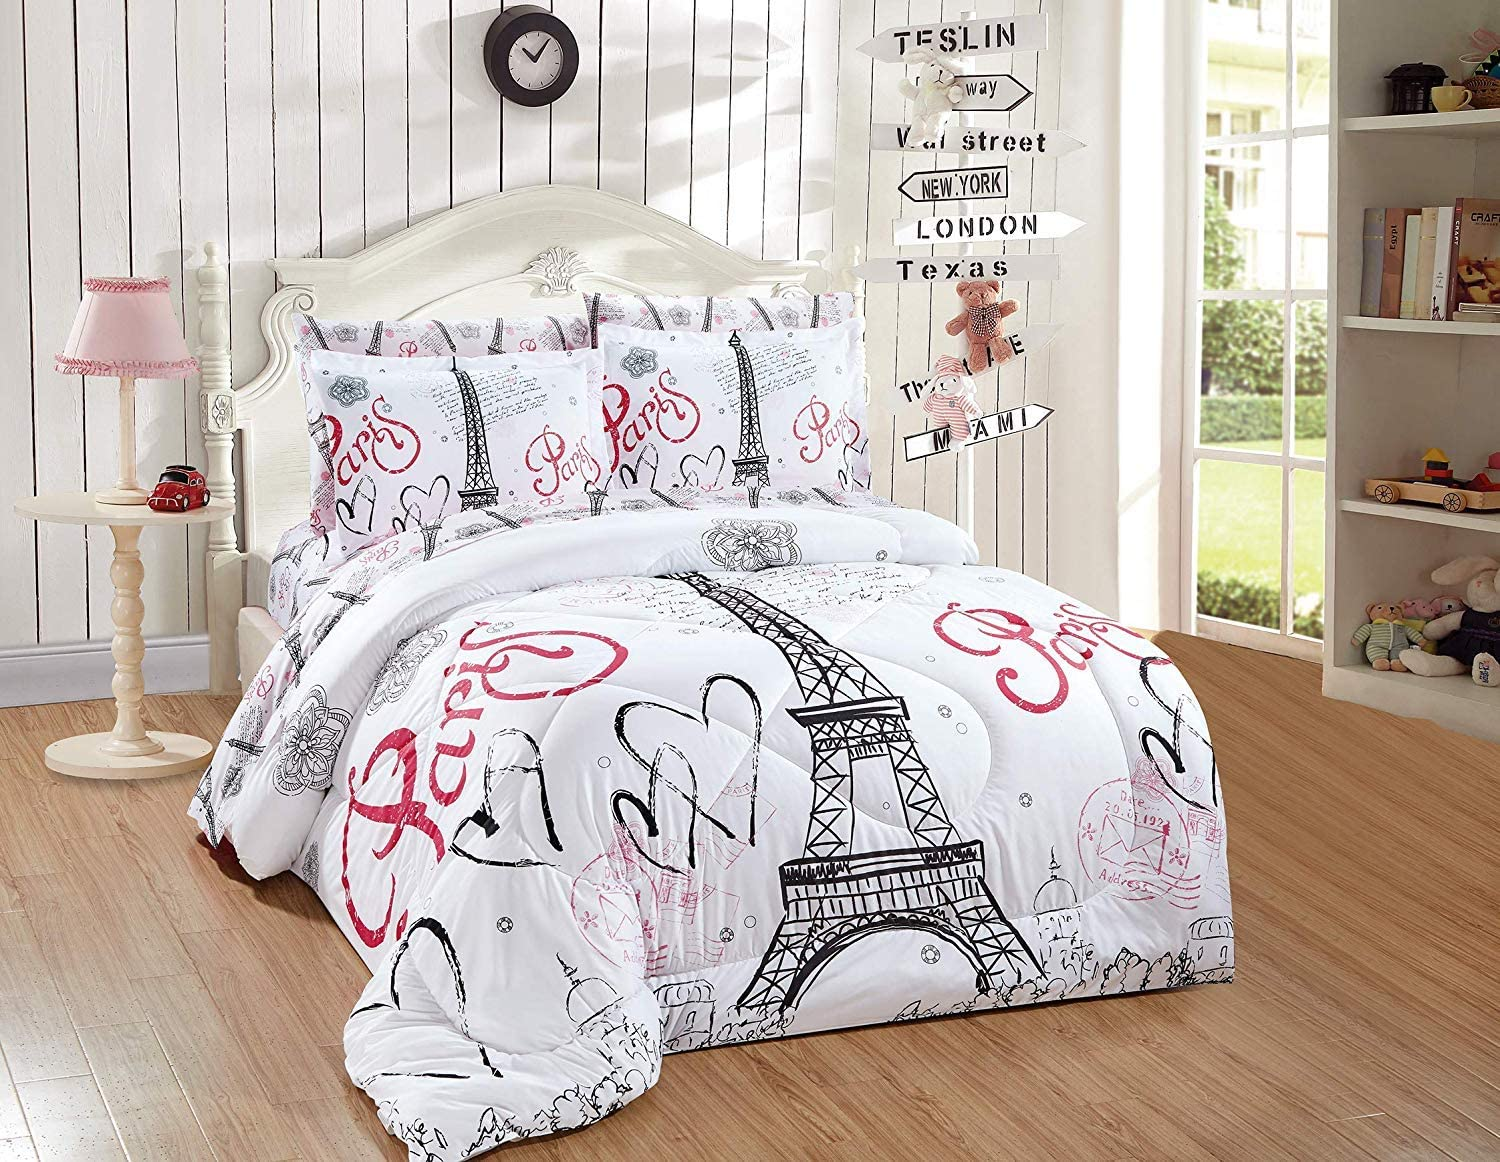 Luxury Home Collection Kids/Teens/Girls 5 Piece Twin Size Comforter Bedding Set/Bed in A Bag with Sheets Floral Paris Eiffel Tower Flowers Hearts White Pink Black